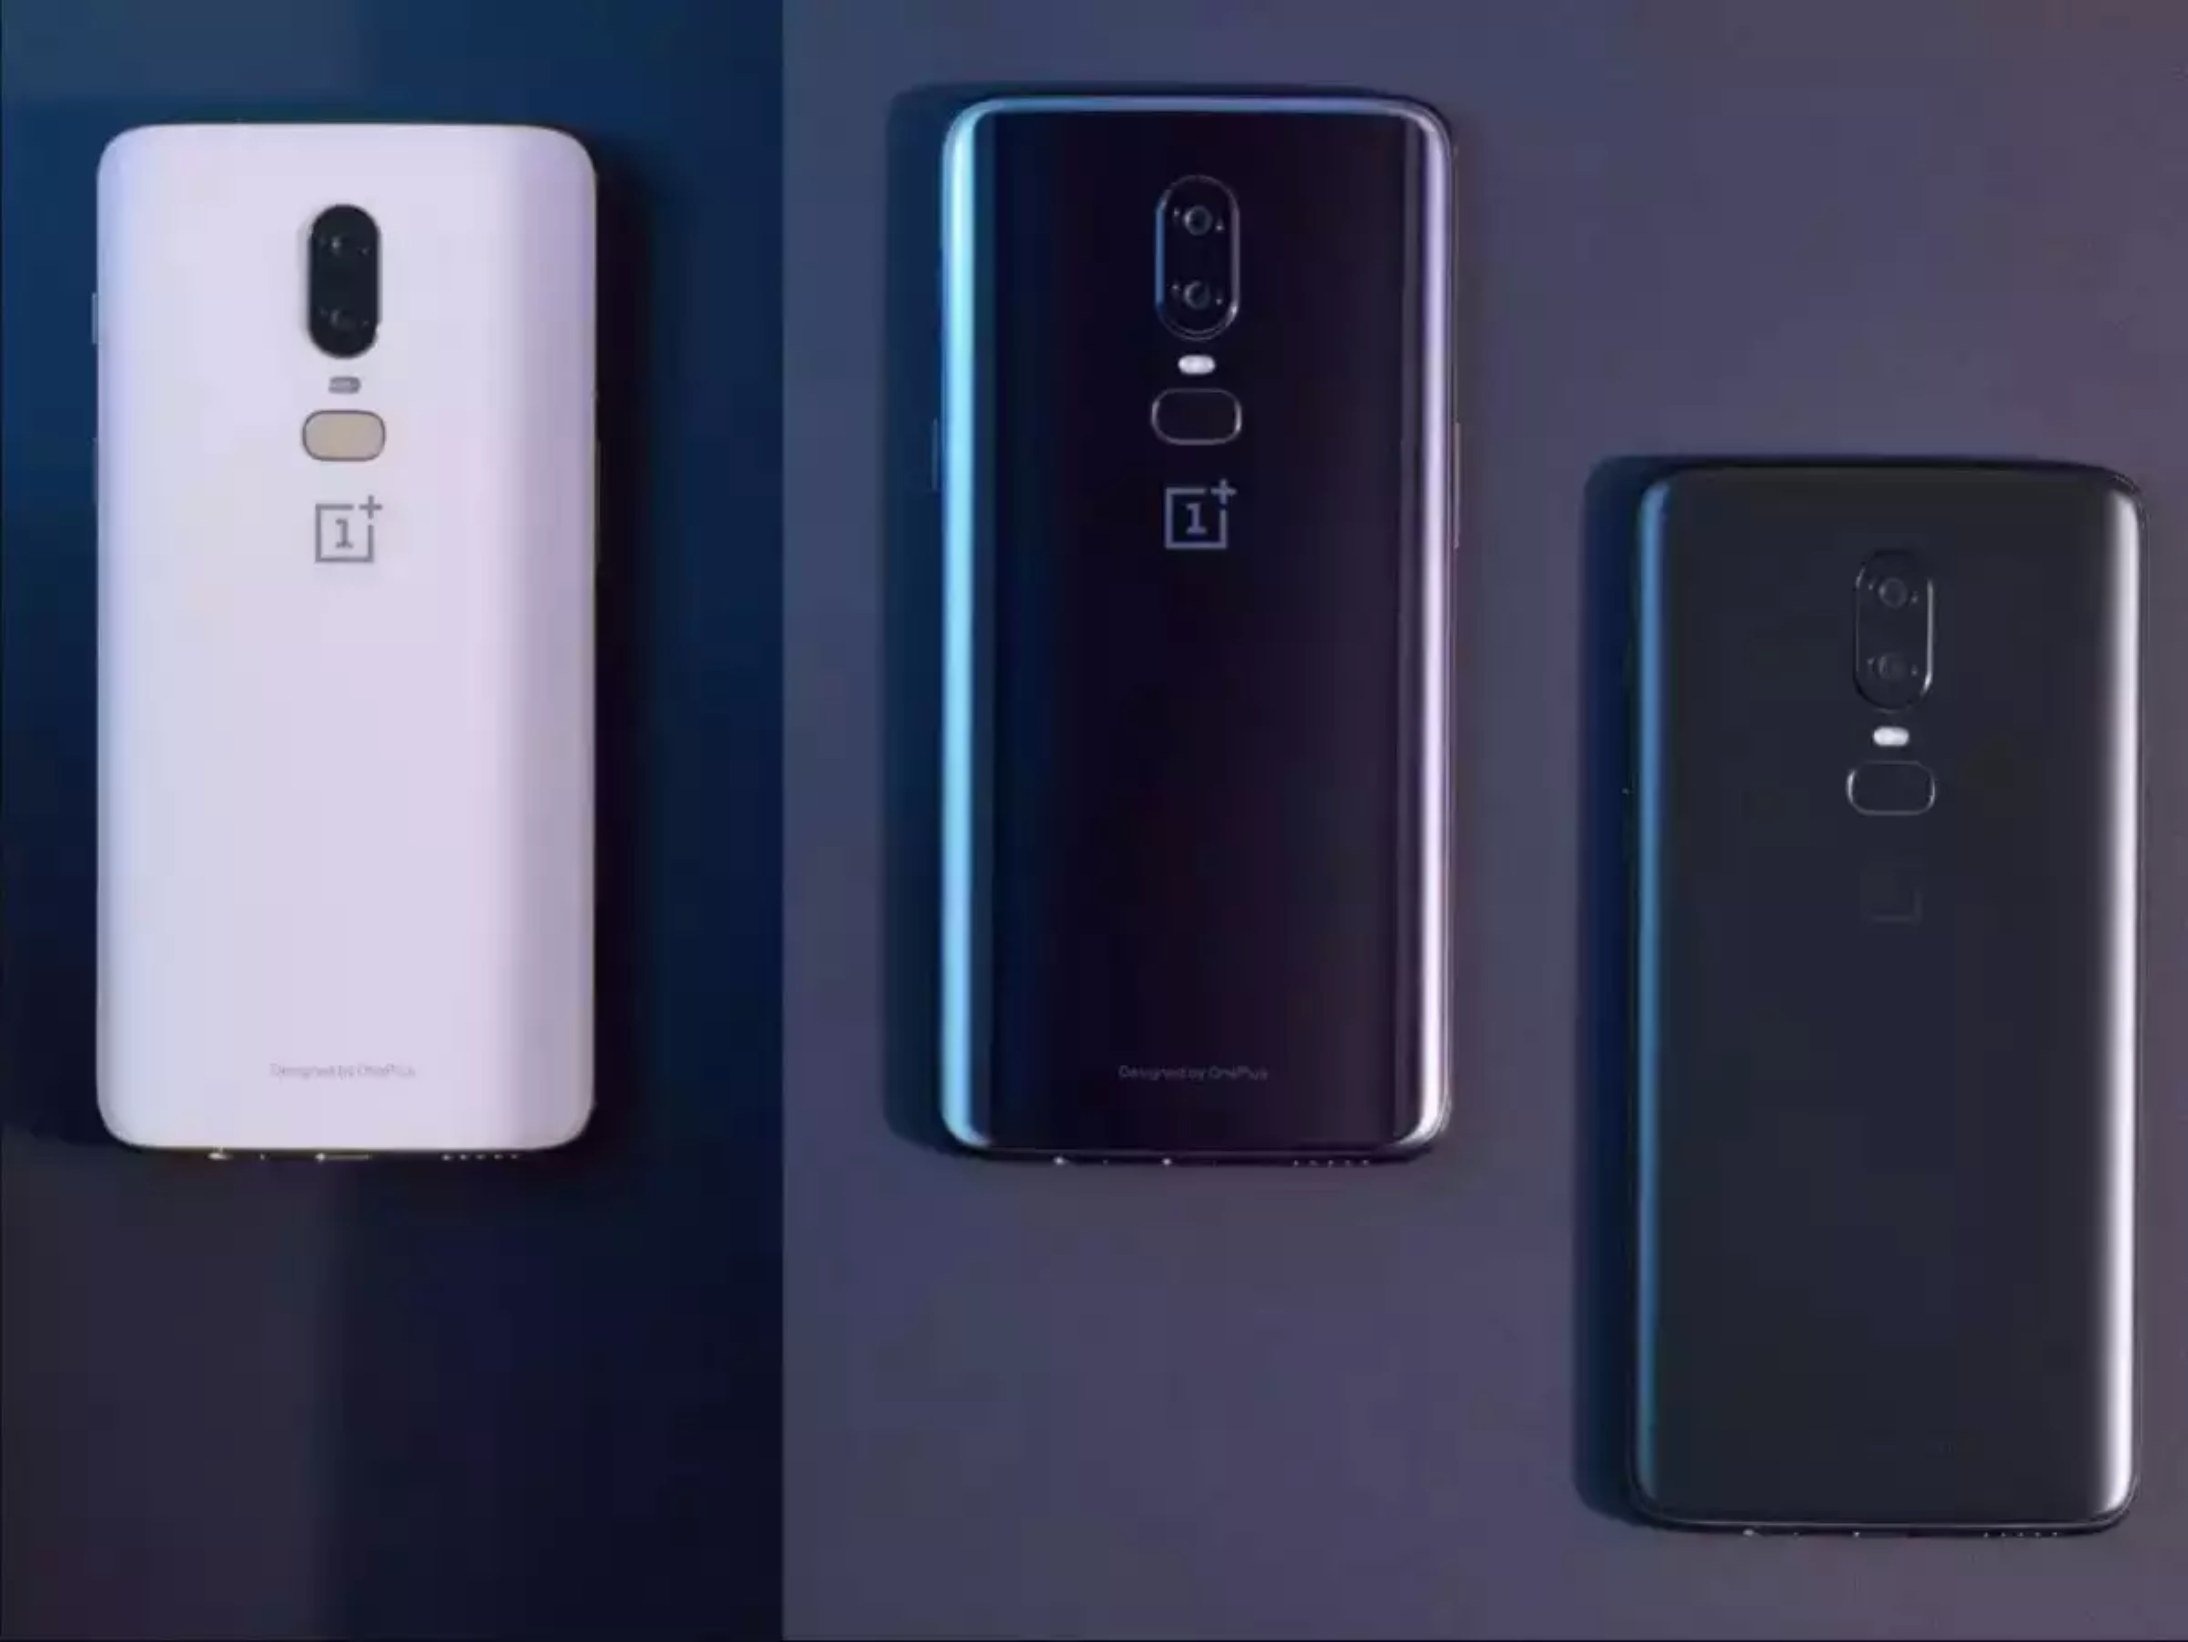 OnePlus 5G prototype phone to debut this MWC 2019